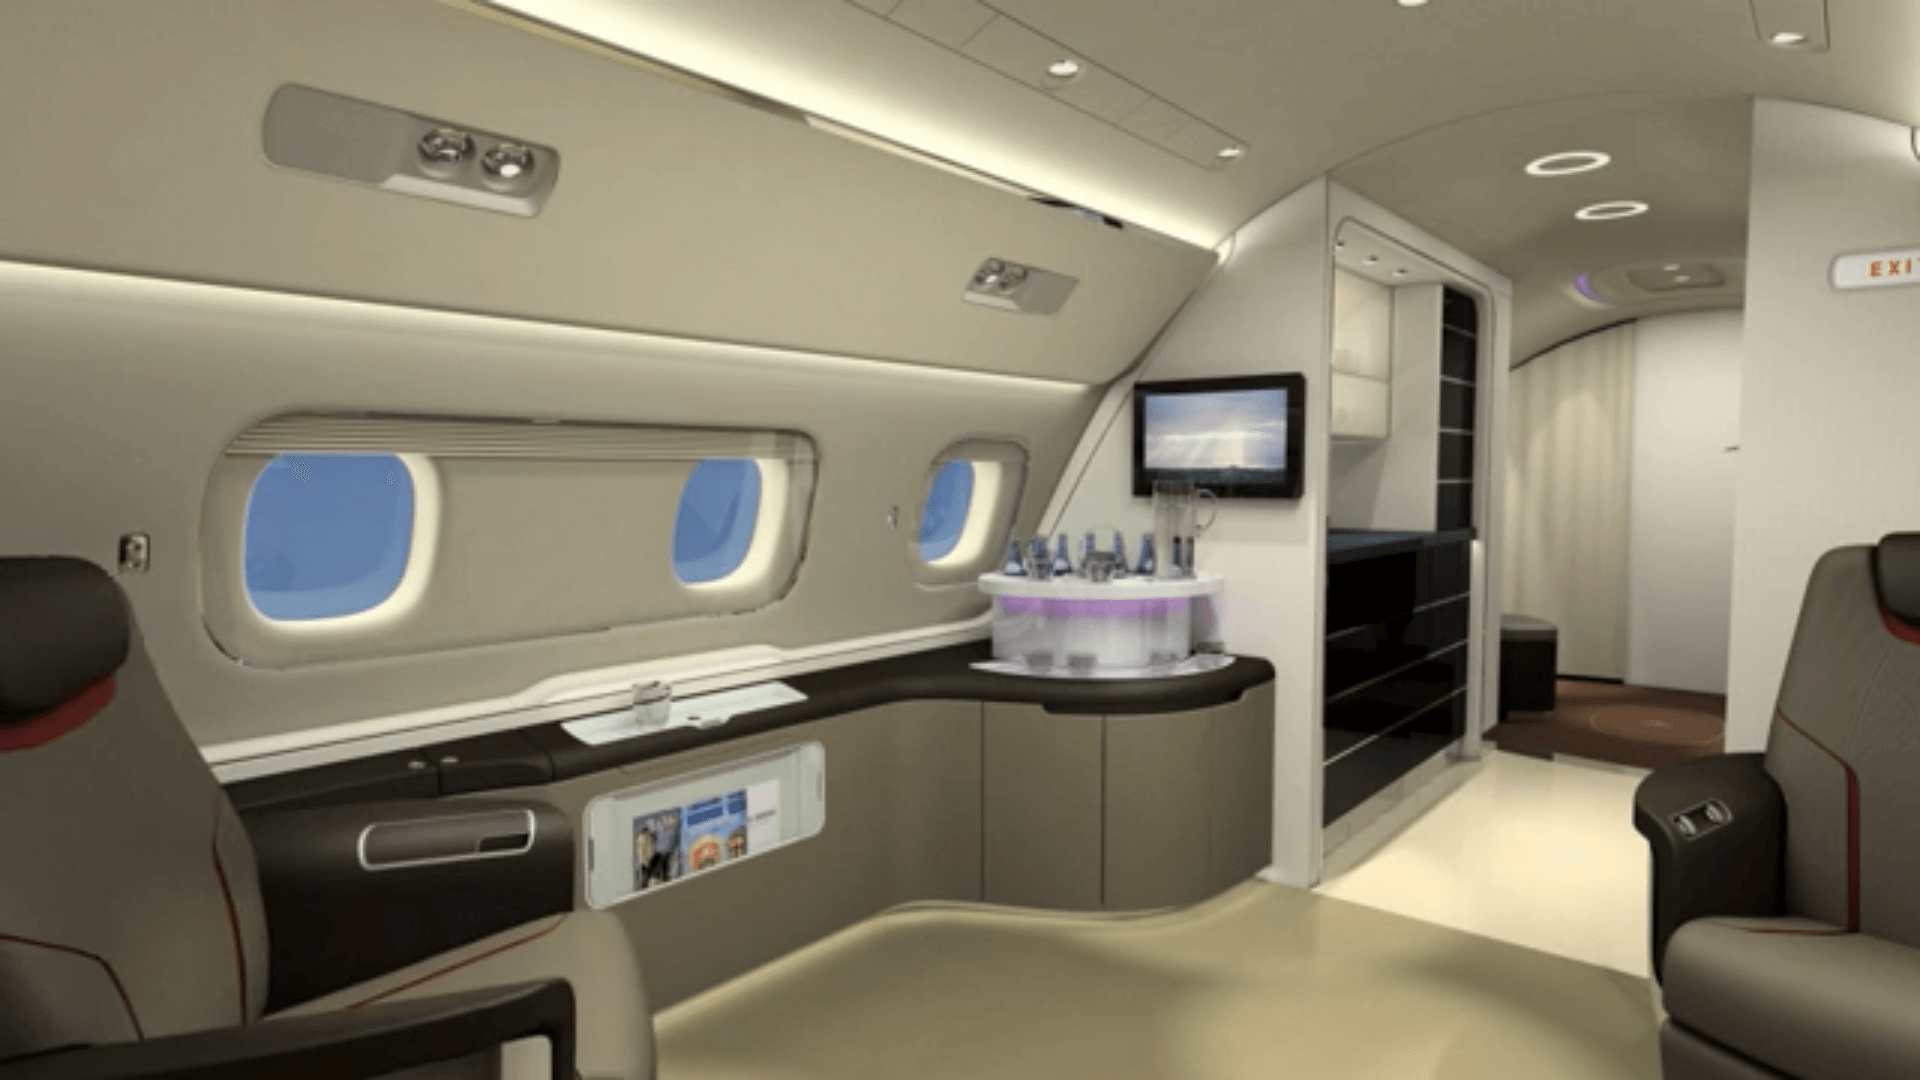 The Embraer Lineage 1000 Jet Interior Design By Priestmangoode